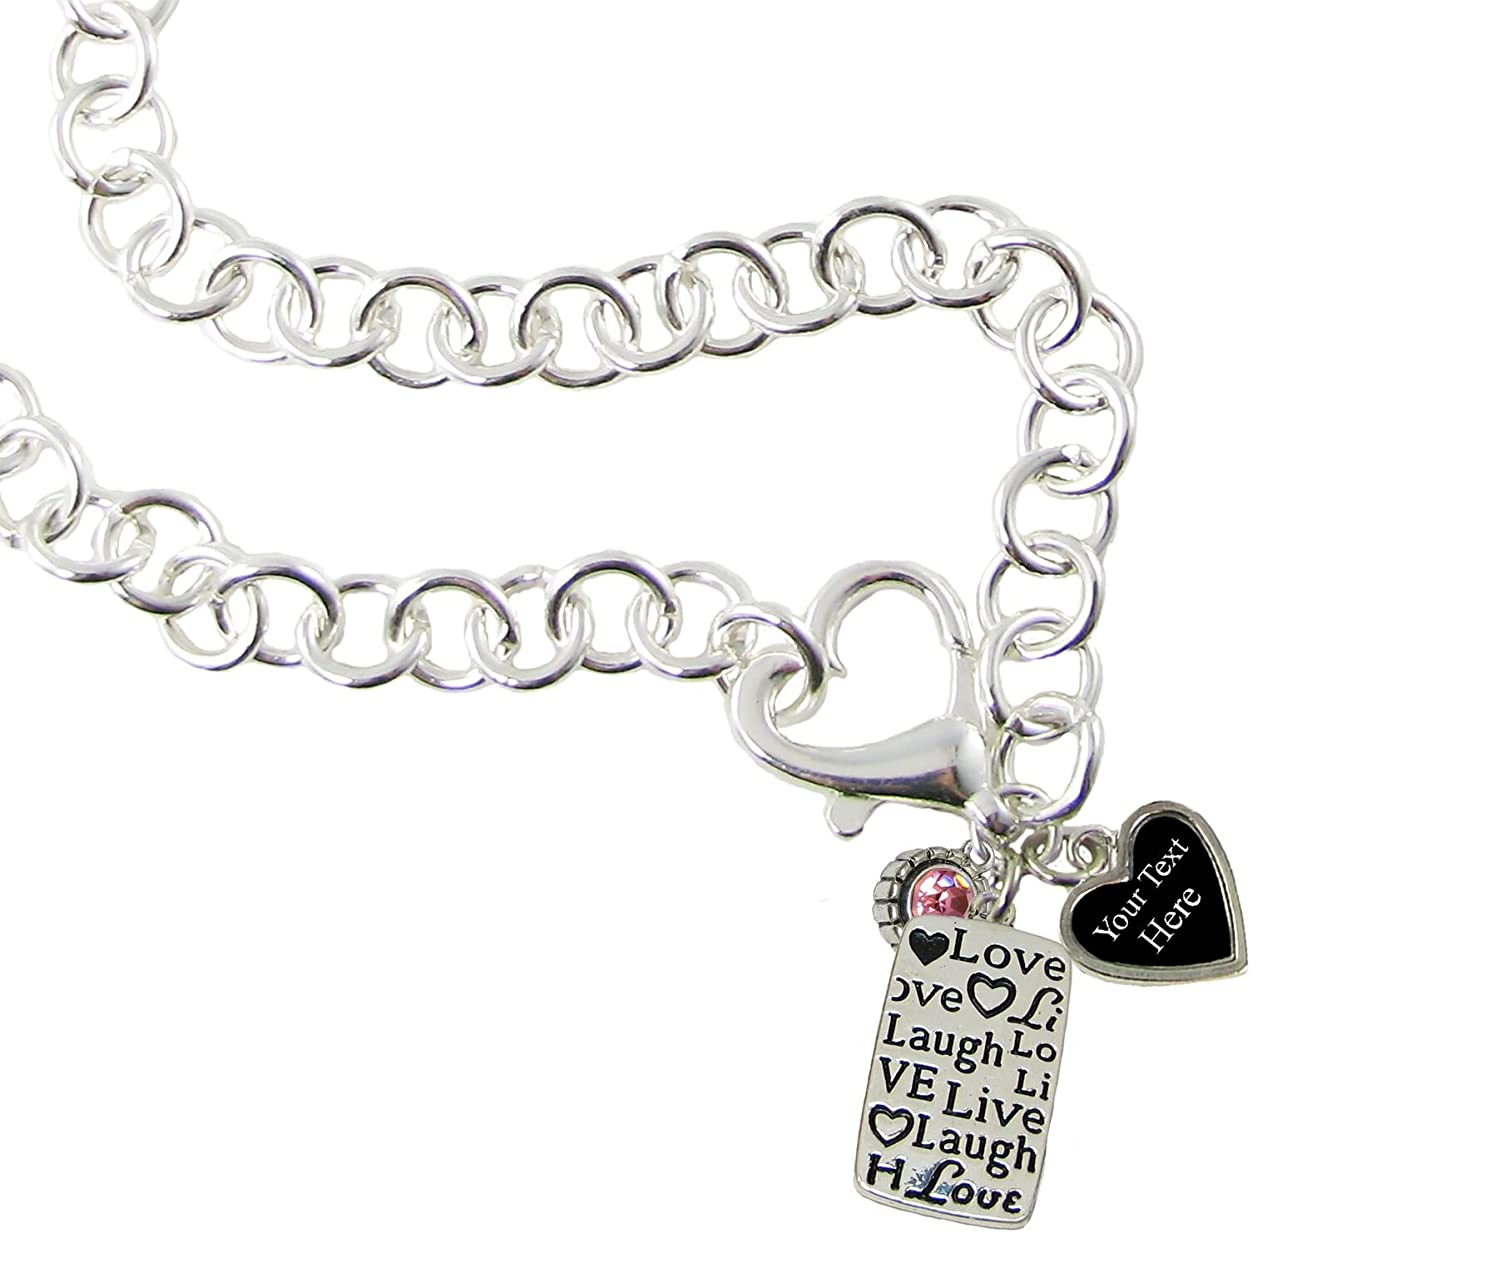 Holly Road Live Love Laugh Silver Heart Clasp Necklace Jewelry Choose Your Text